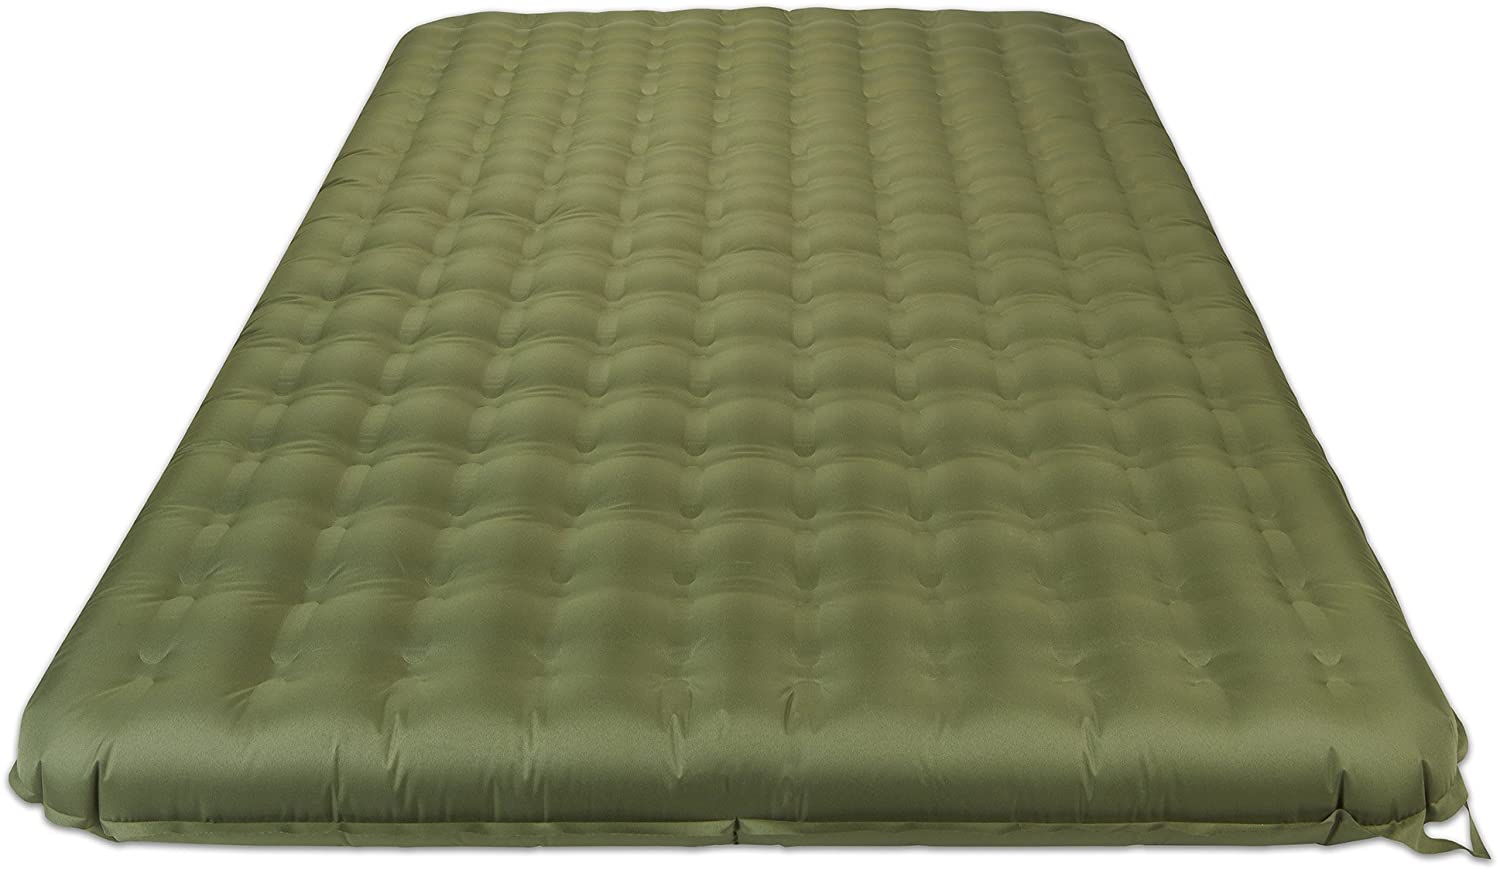 Thin Mattress Topper Best Thin Air Mattress For Camping 5 Top Models Air Bed